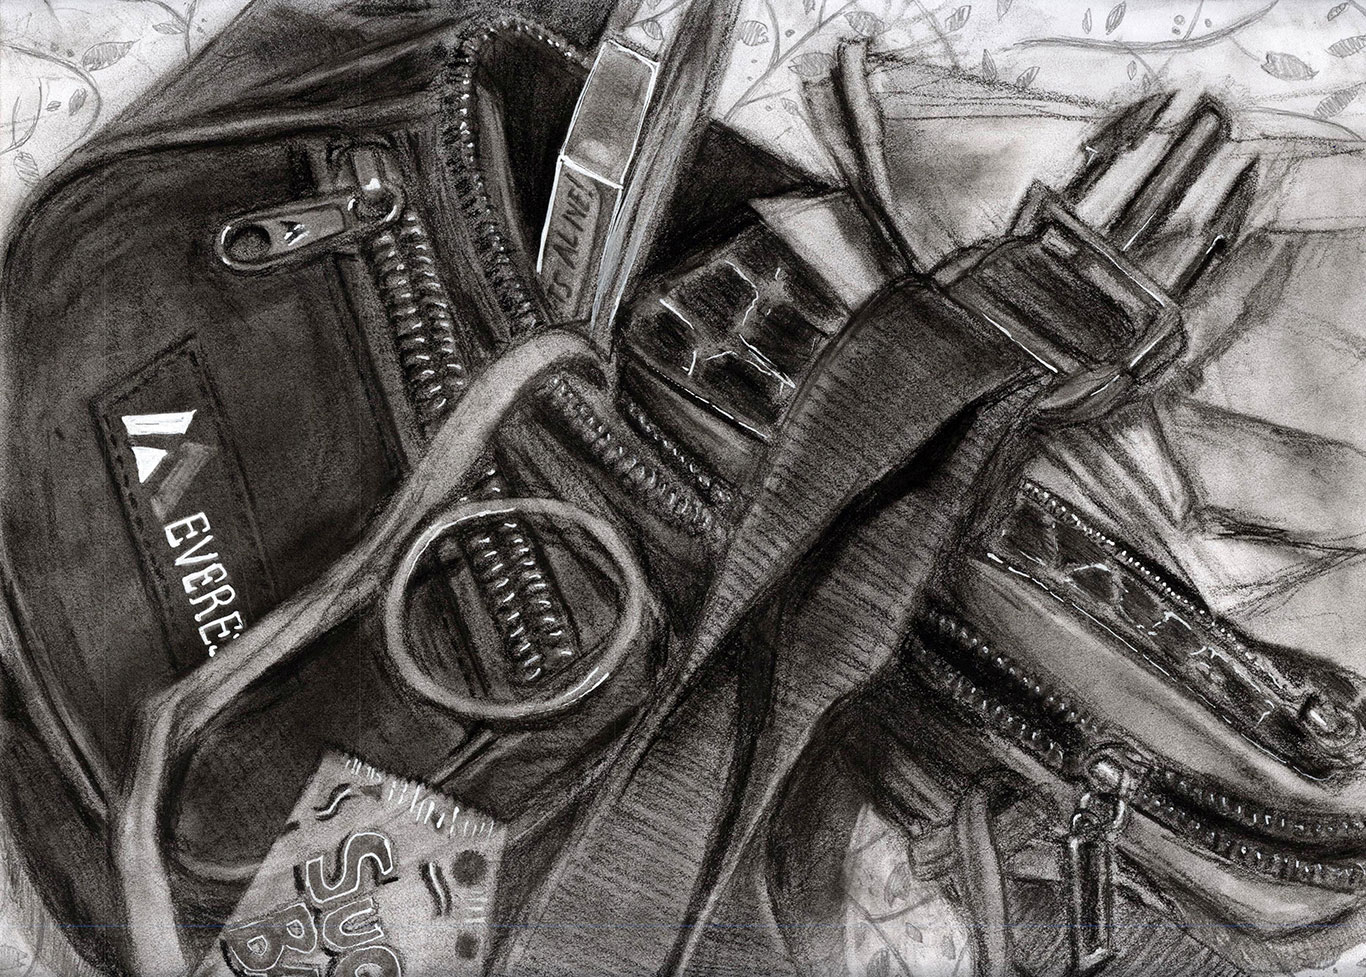 Charcoal Drawing by Wendy Duong